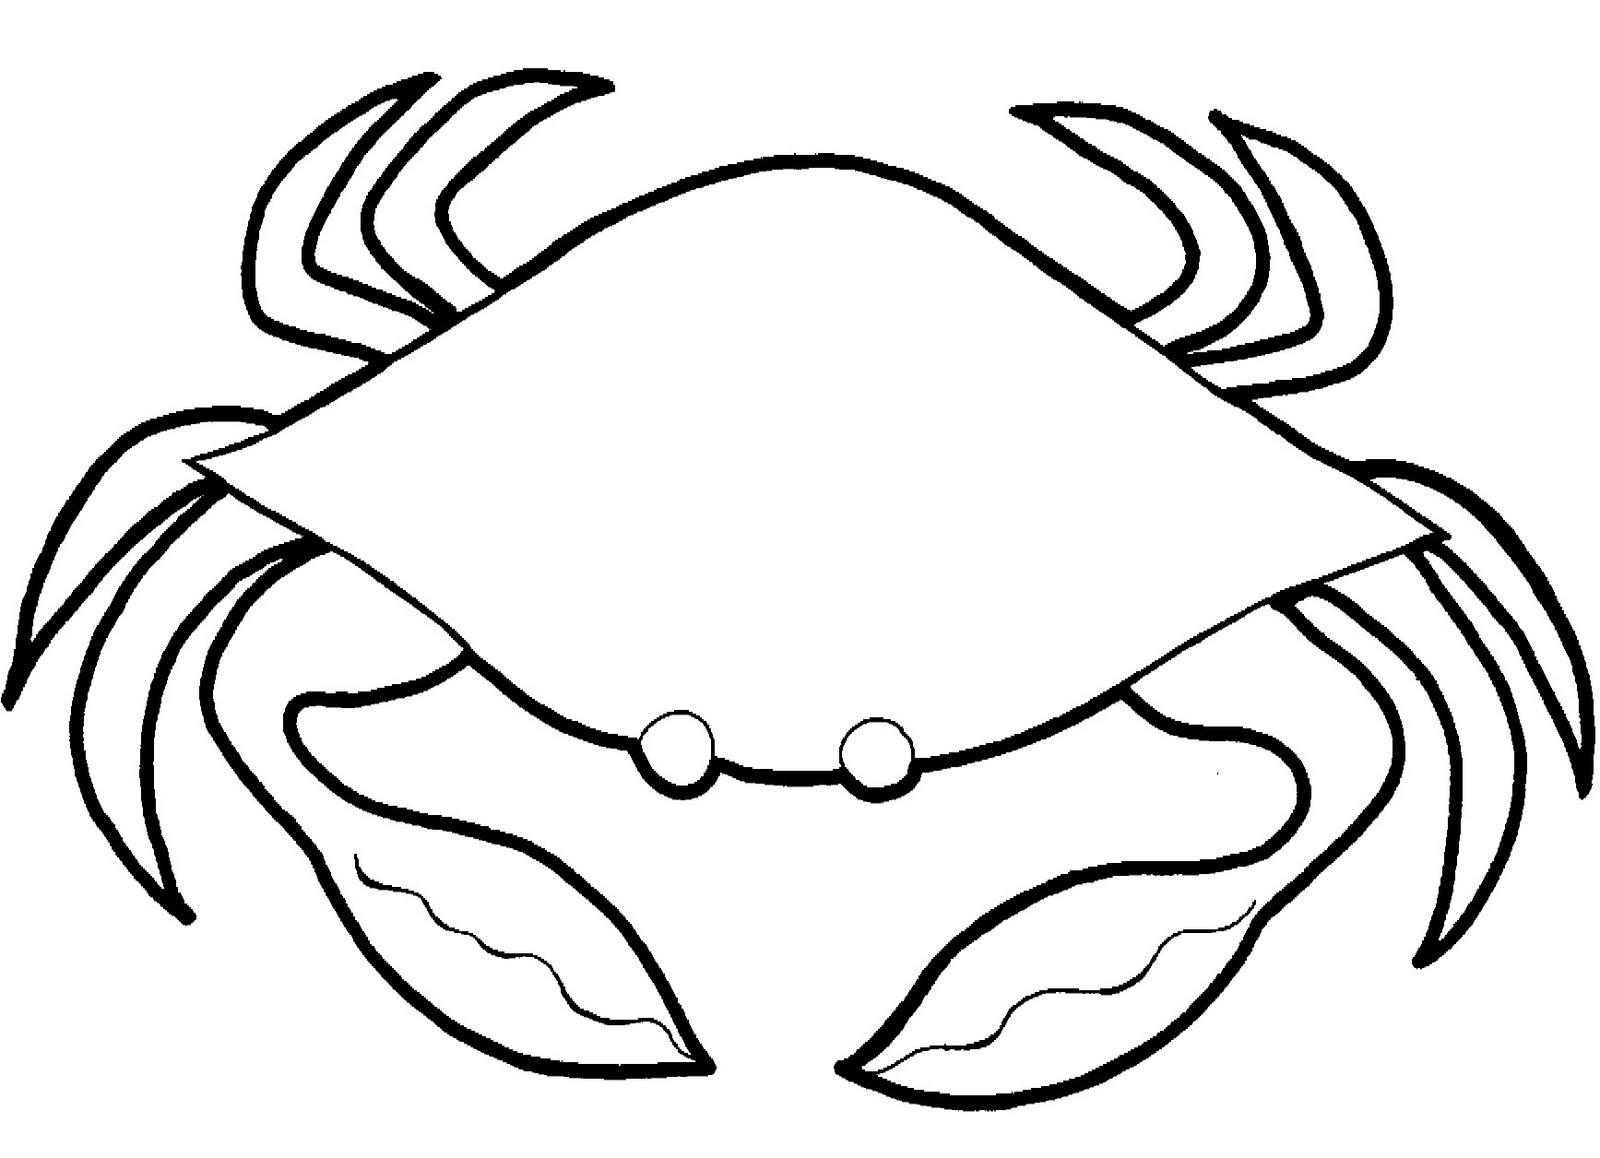 17 Marine Animals Crab Coloring Sheet